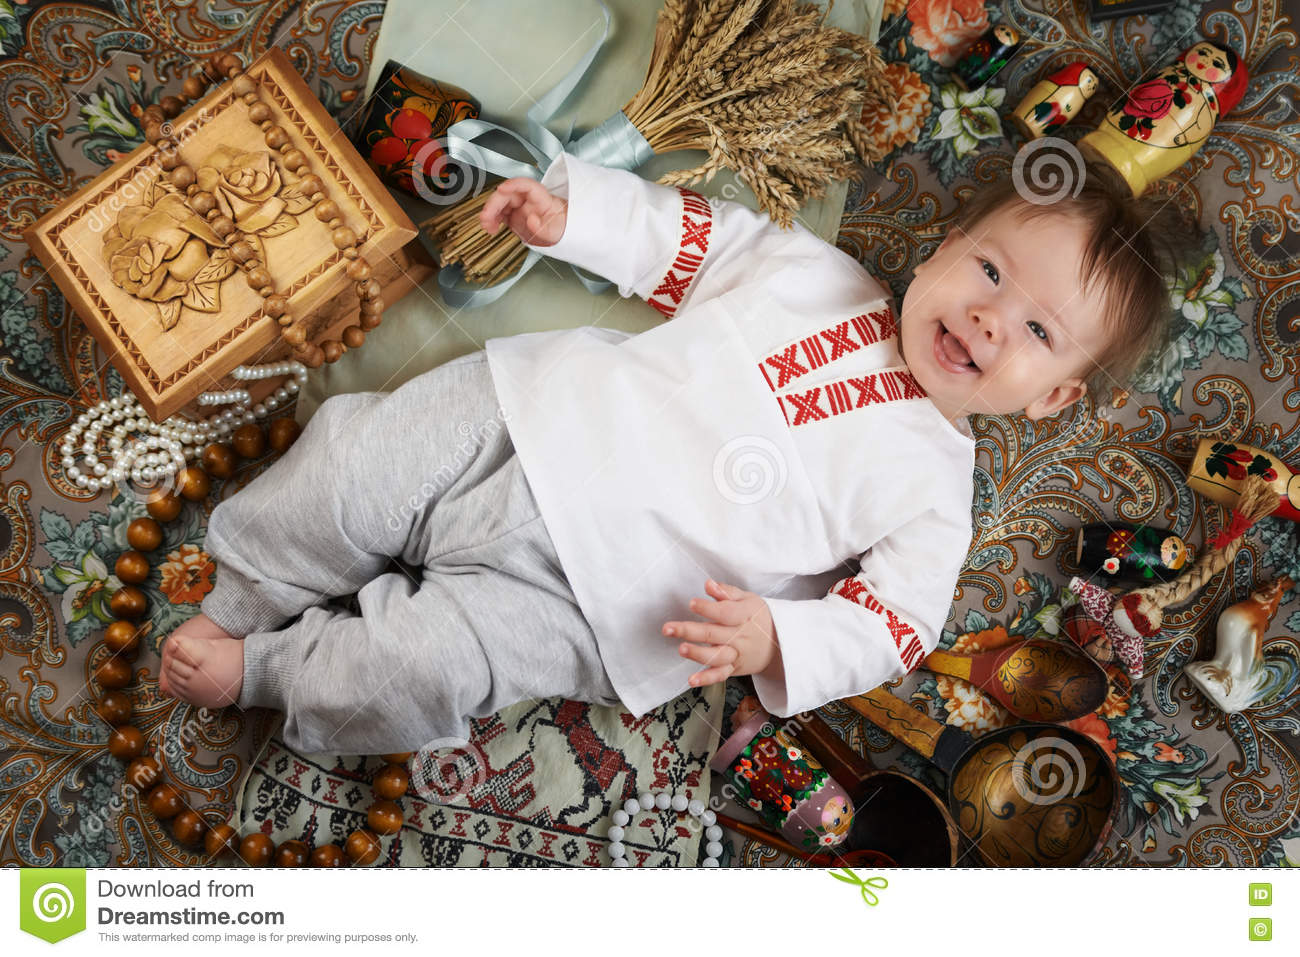 Little boy in a traditional russian shirt surrounded by russian antiques